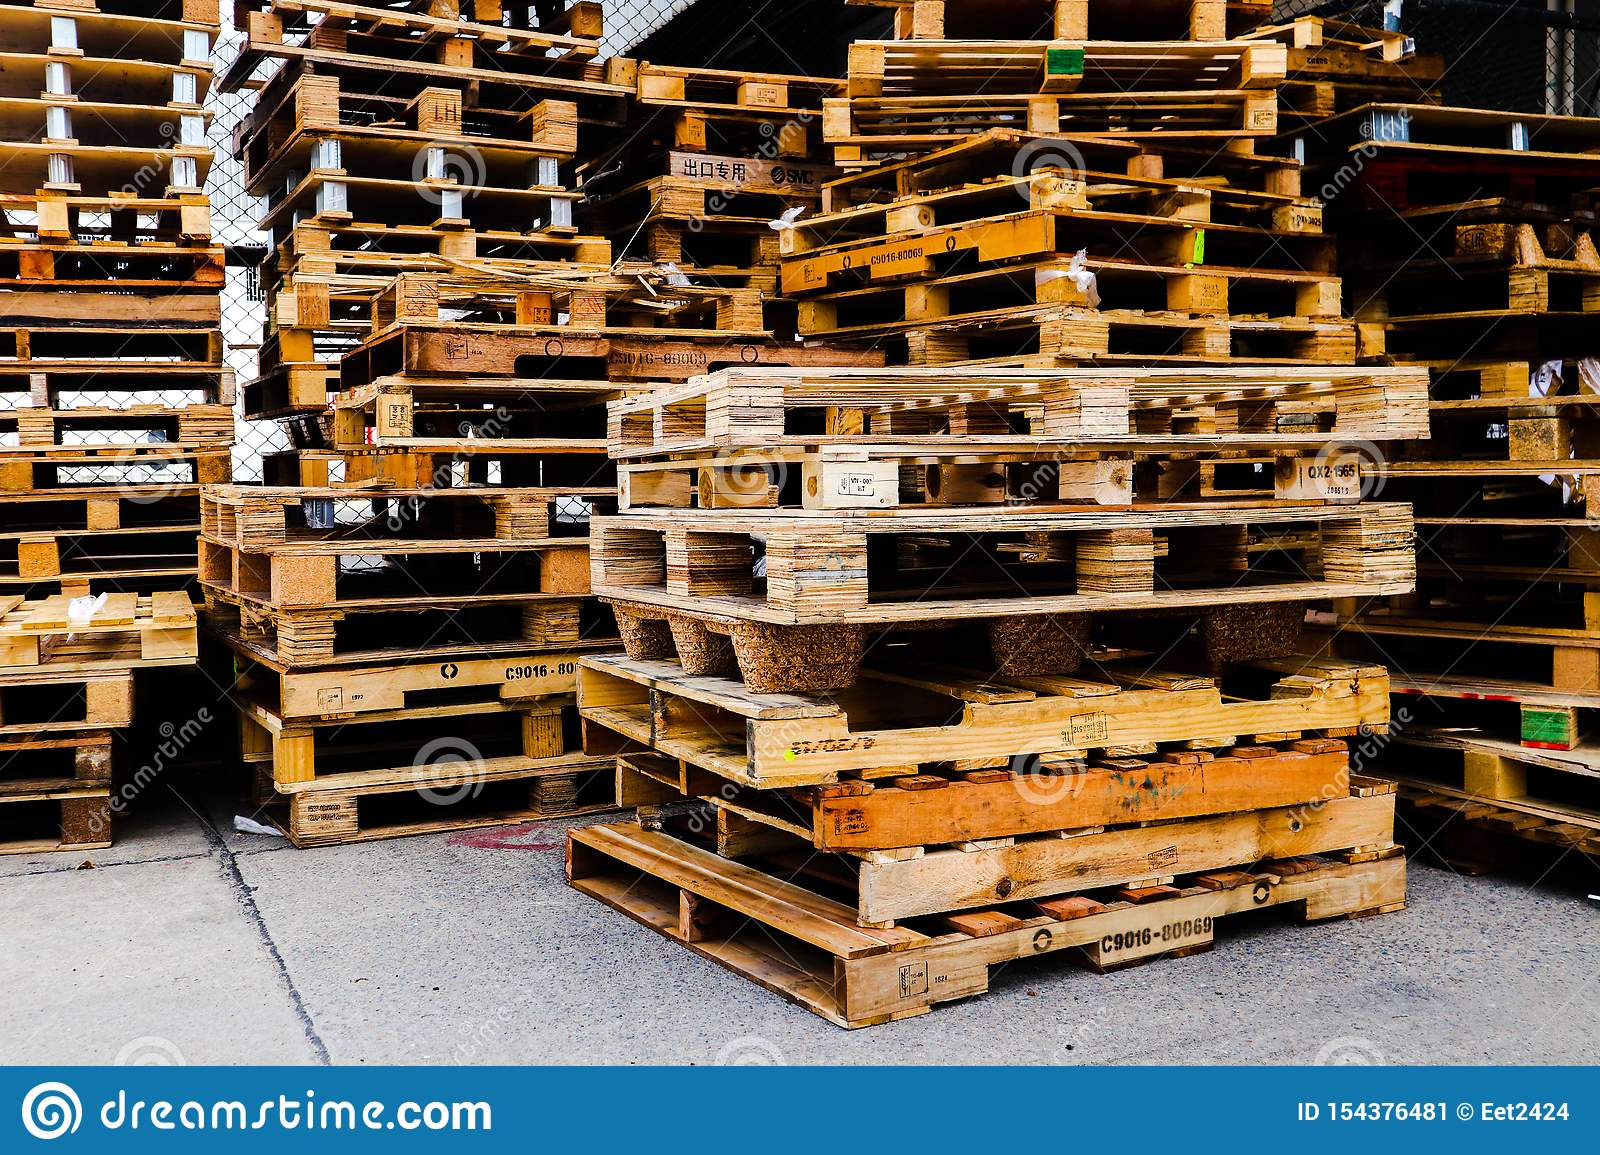 Warehouse industrial wooden products and wood materials